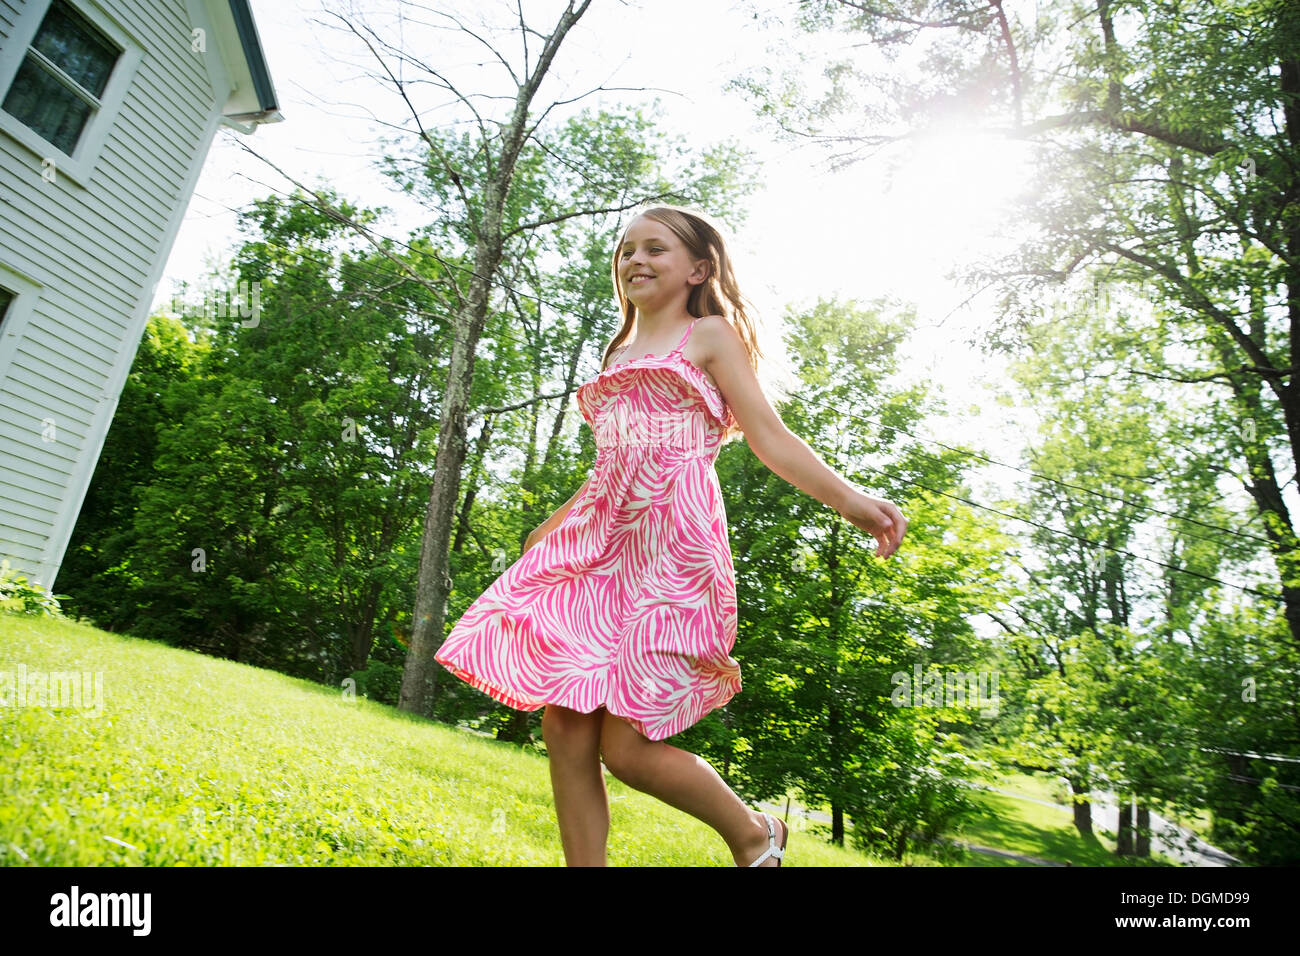 A young girl in a pink patterned sundress running across the grass under the trees in a farmhouse garden. - Stock Image